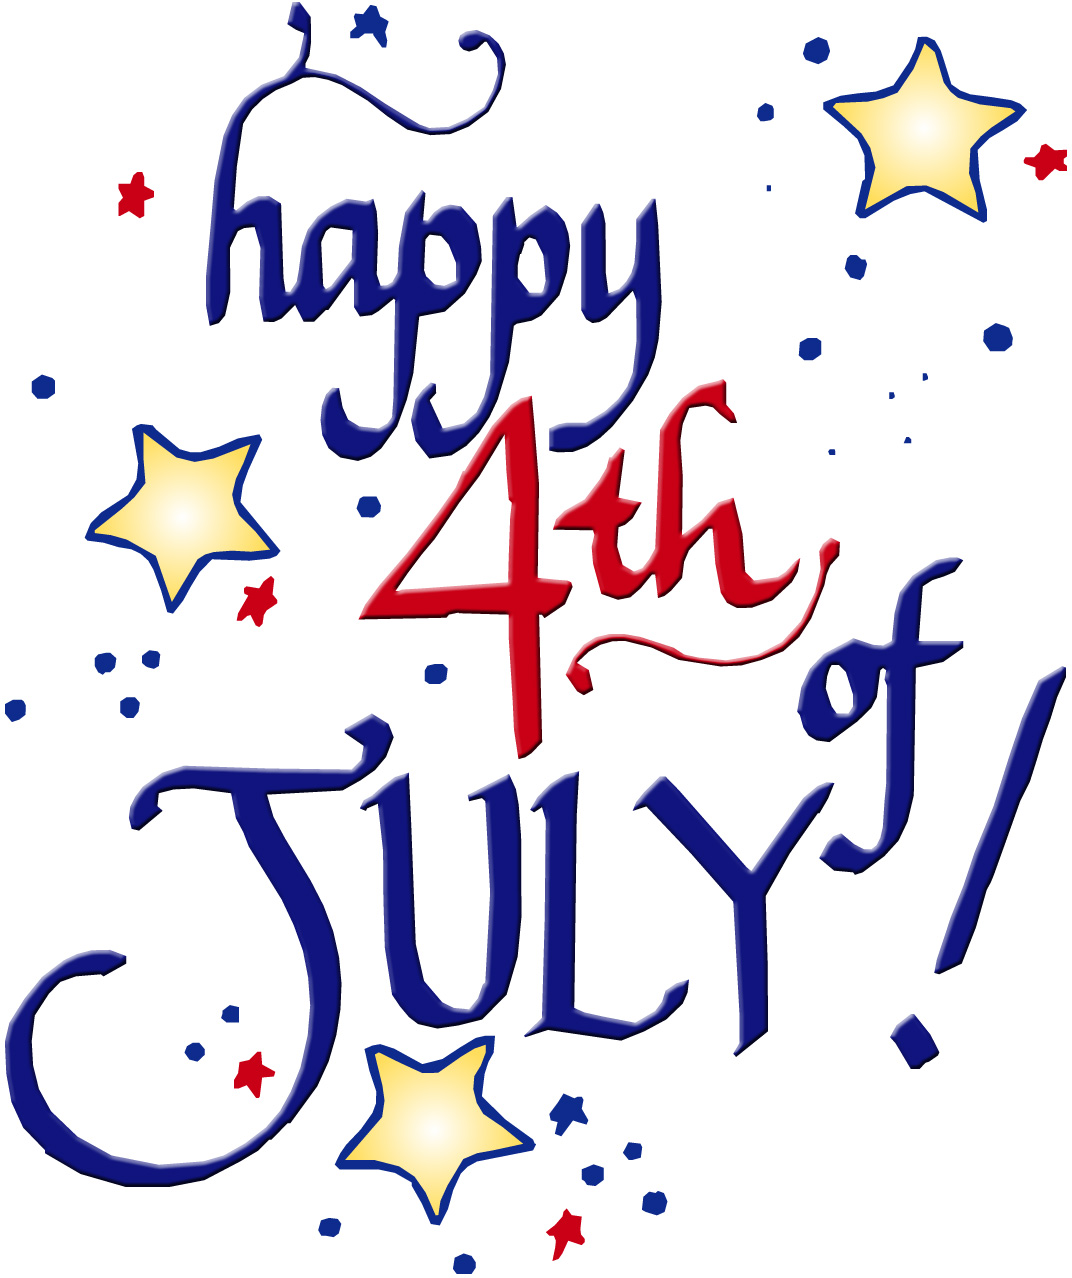 July 4th clipart july4th photo pictures -July 4th clipart july4th photo pictures images-5